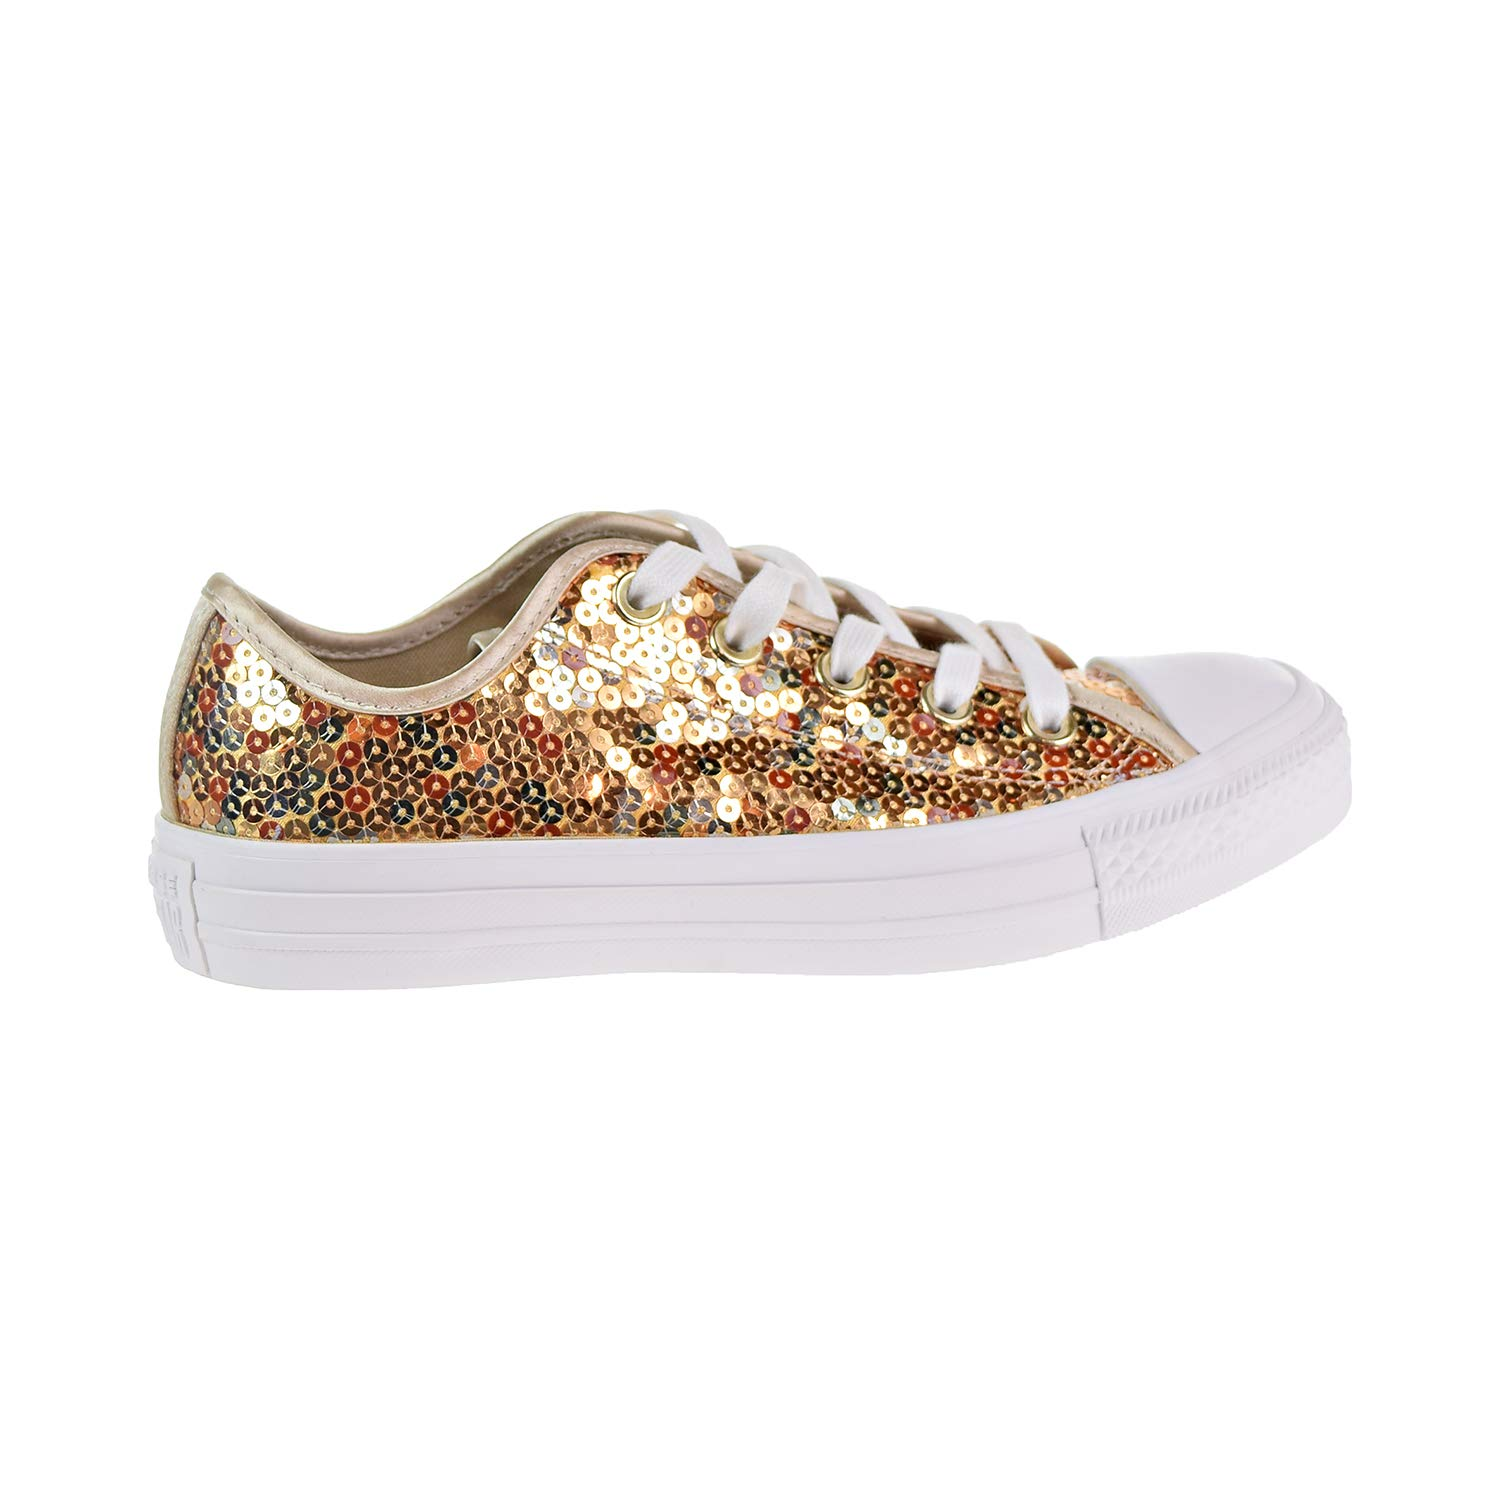 Converse Chucks CT AS OX 562446C Mehrfarbig Gold Light Gold Weiß